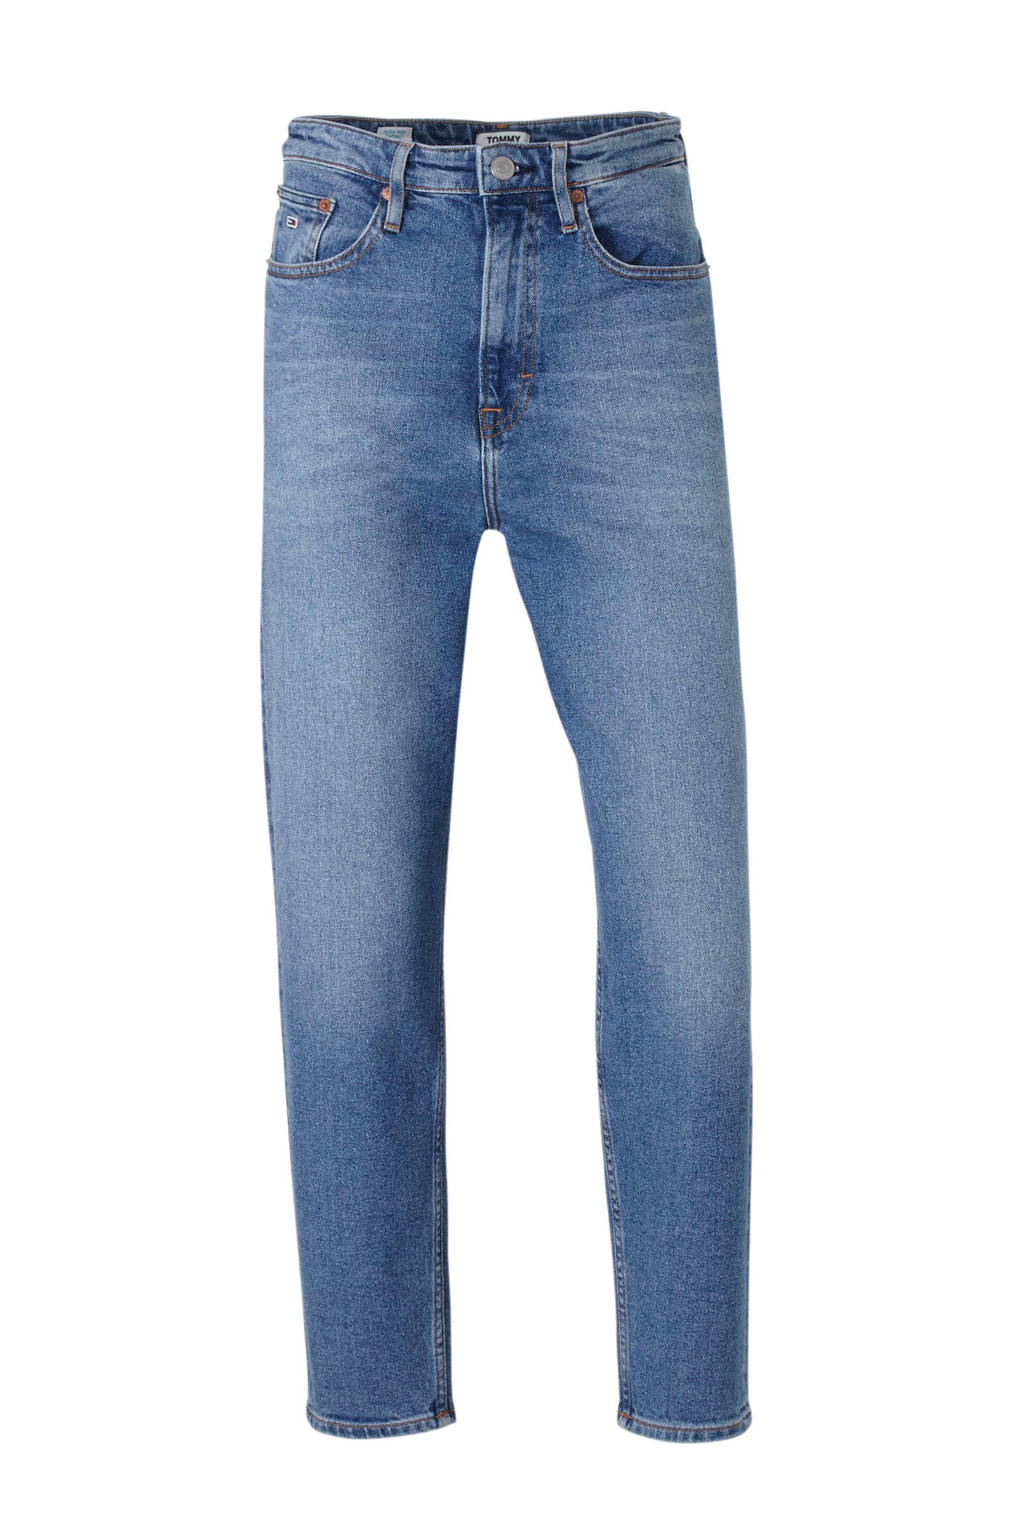 Tommy Jeans high waist tapered fit jeans, Blauw